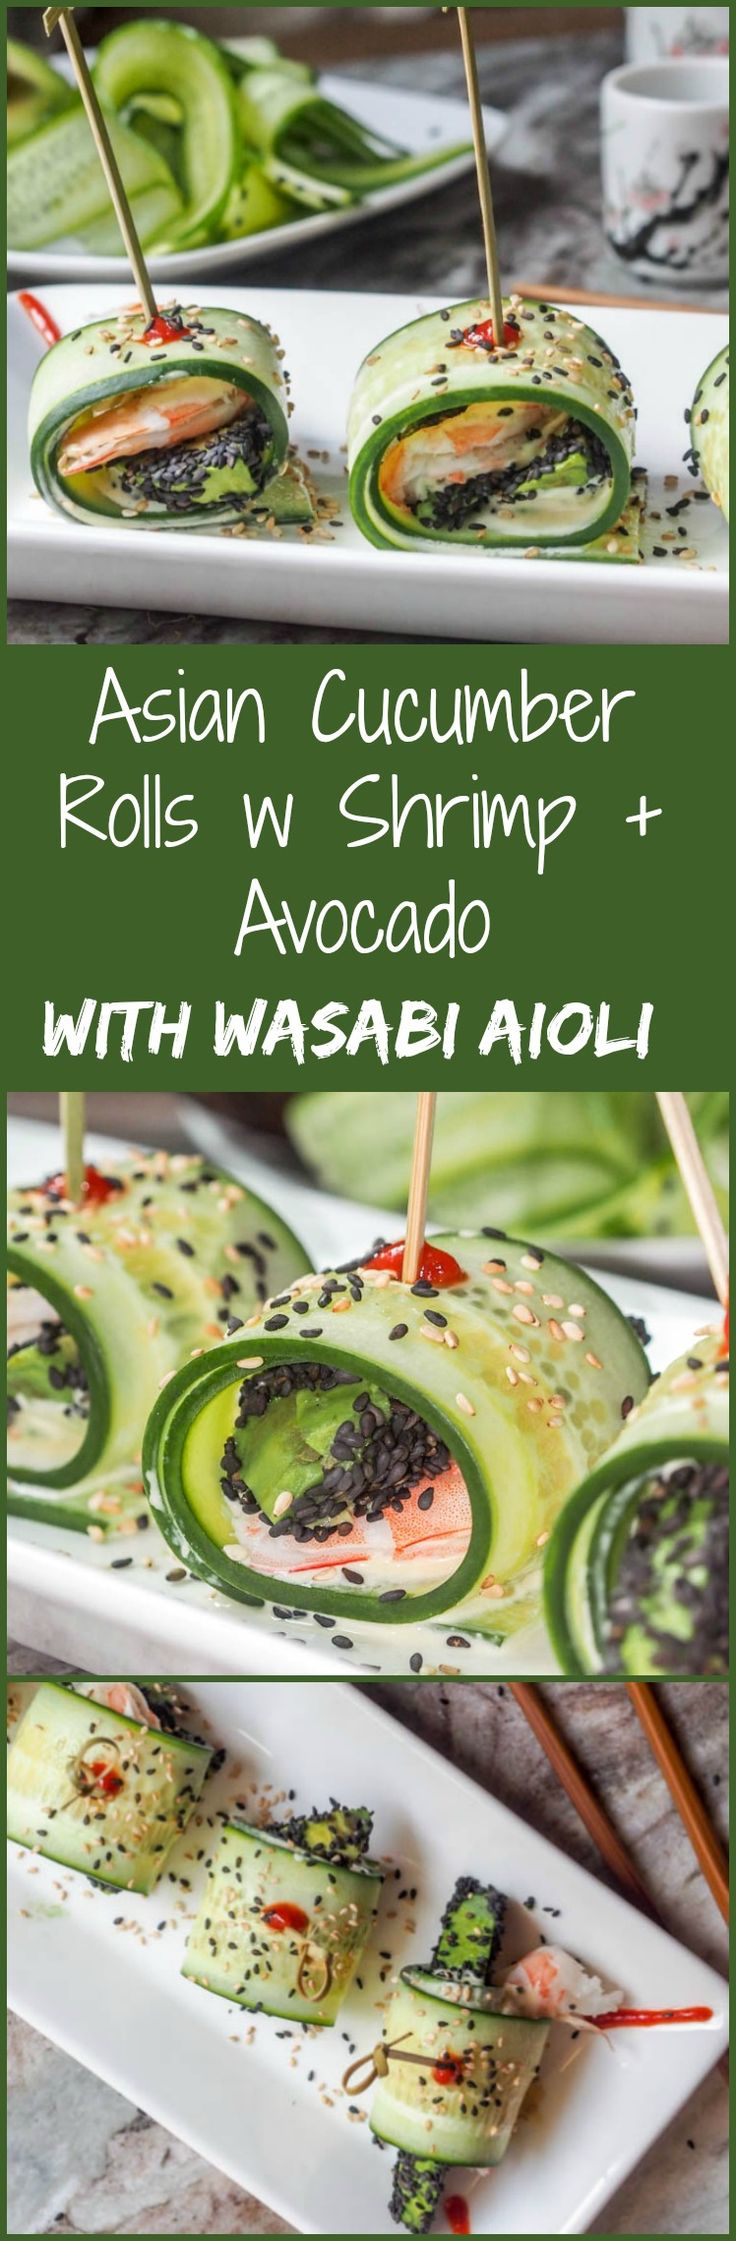 These Asian Cucumber Rolls with Shrimp + Sesame Avocado are served with a Wasabi Aioli and simply brimming with fresh crunchy flavors. The definition of summer flavors. Low carb and healthy. Serve as a light lunch or appetizer. Gluten Free and Dairy Free.   avocadopesto.com